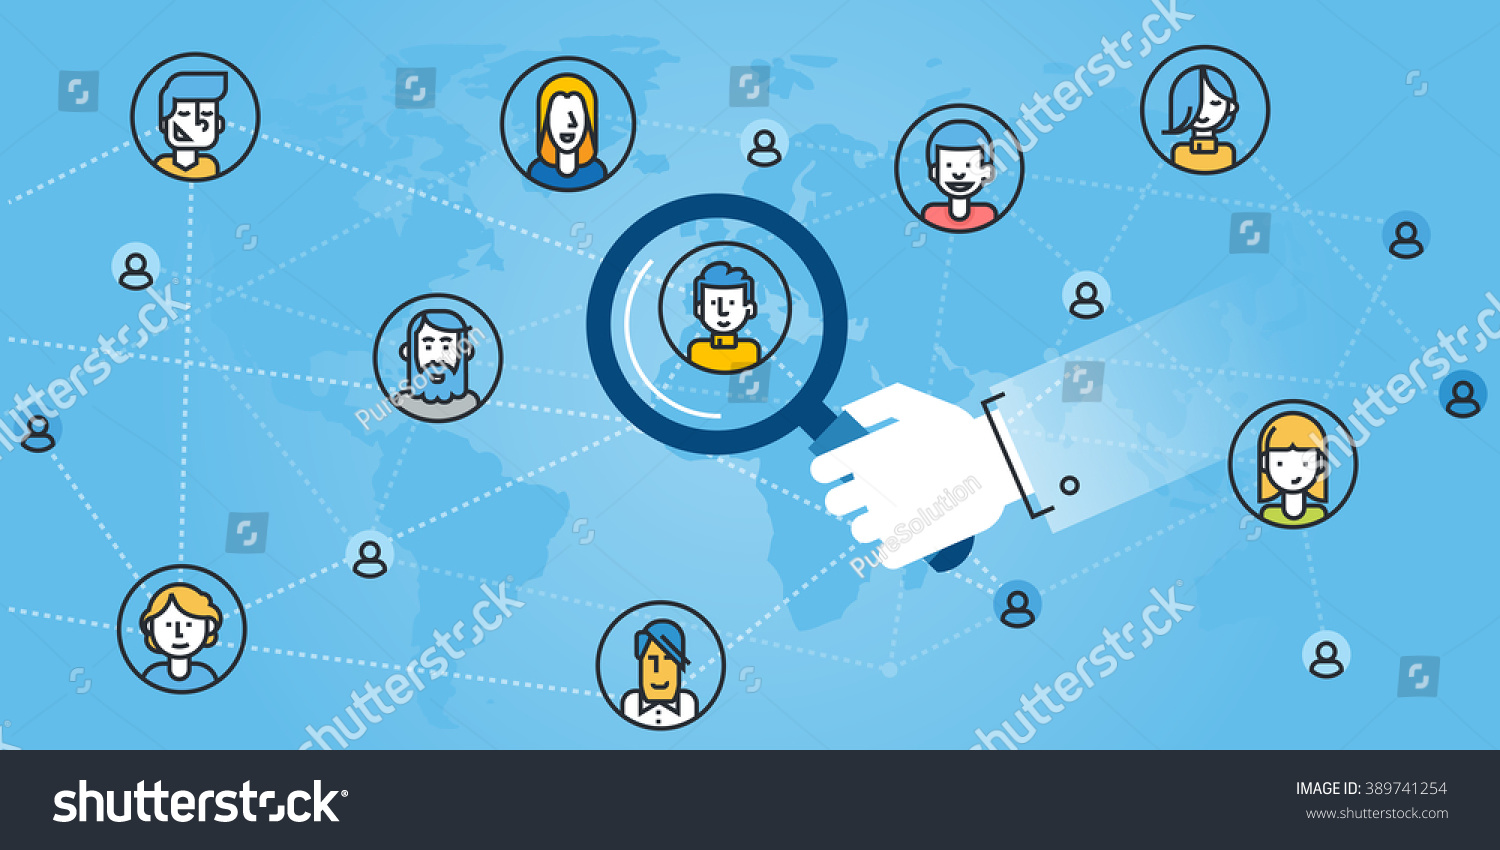 flat line design website banner networking stock vector  flat line design website banner of networking the right person searching people for